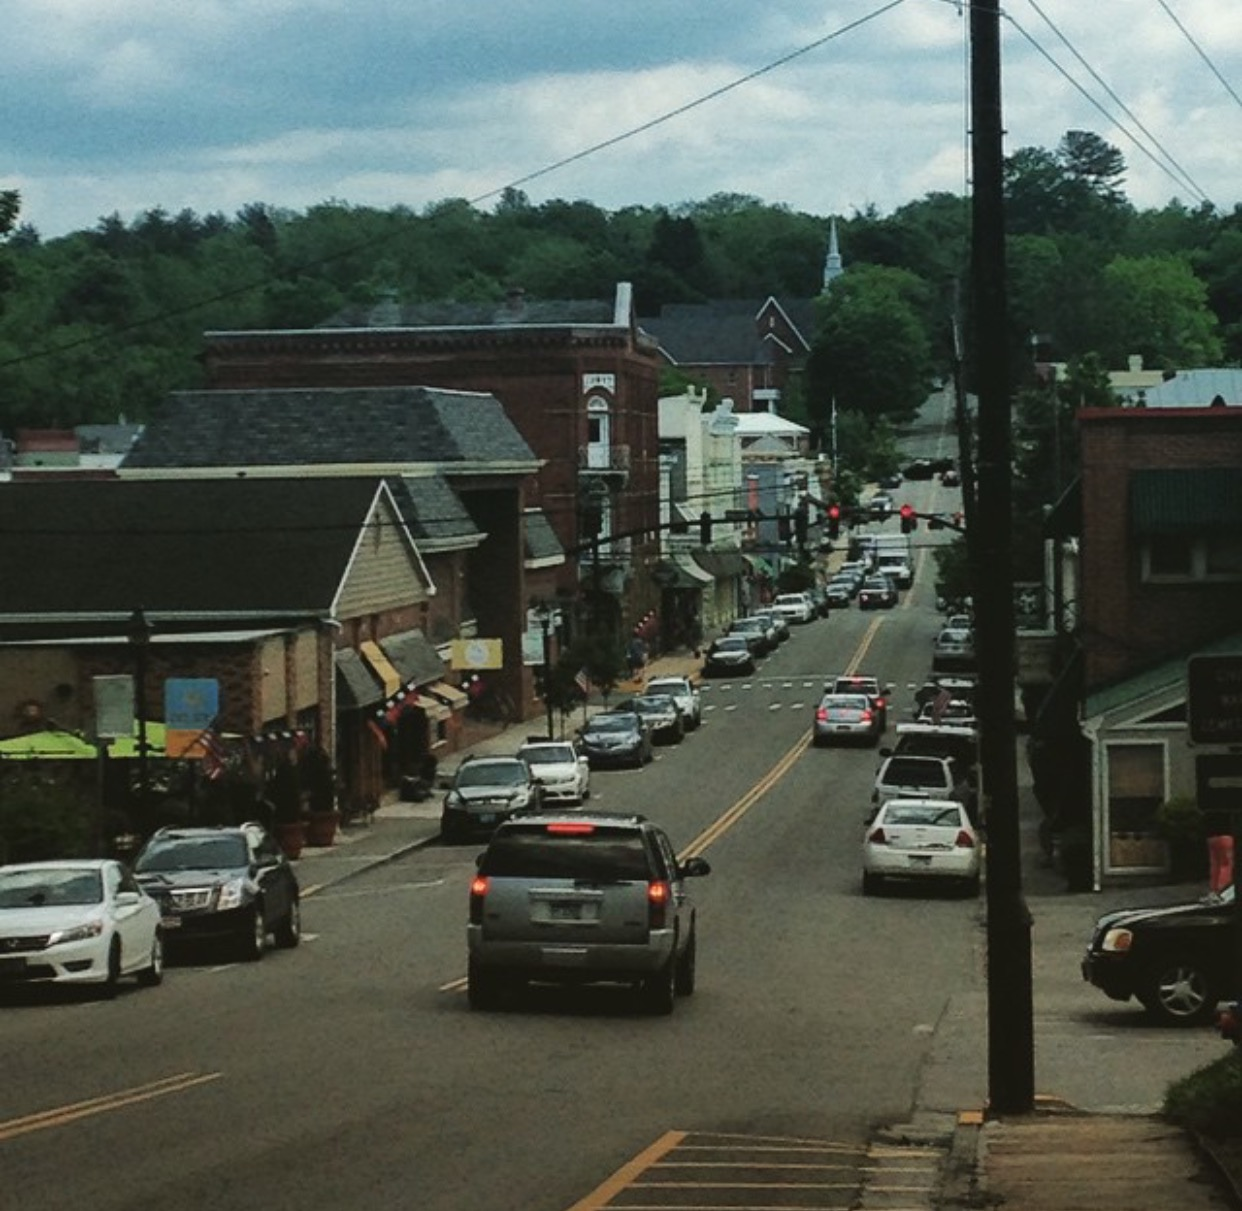 Lewisburg, WV, a small mountain town like Point Pleasant.